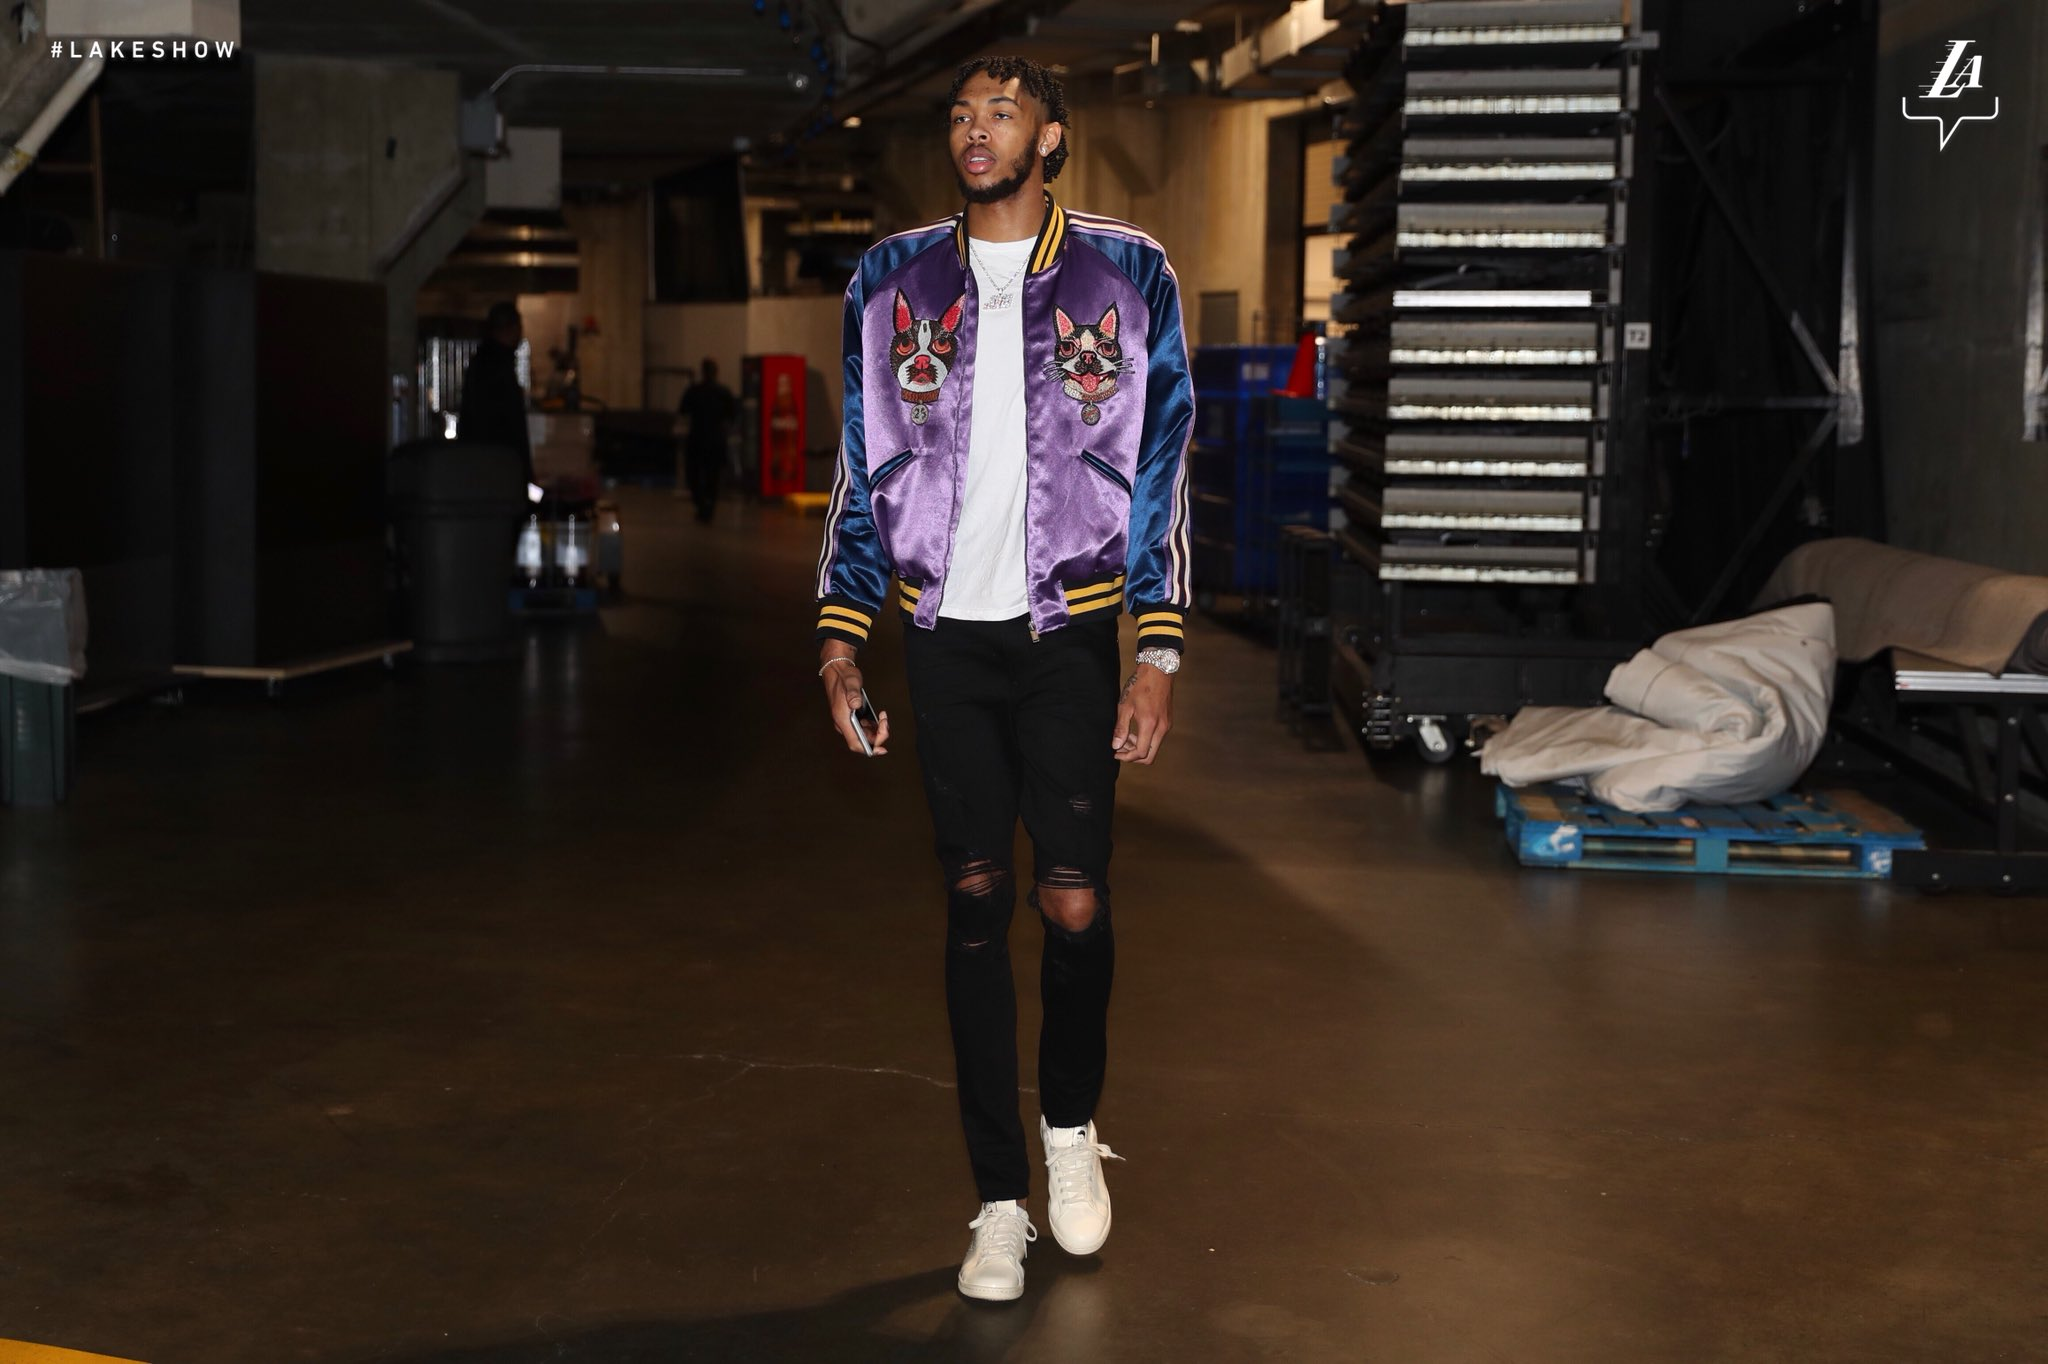 Style Points #LakeShow https://t.co/UdKfwxp0F9